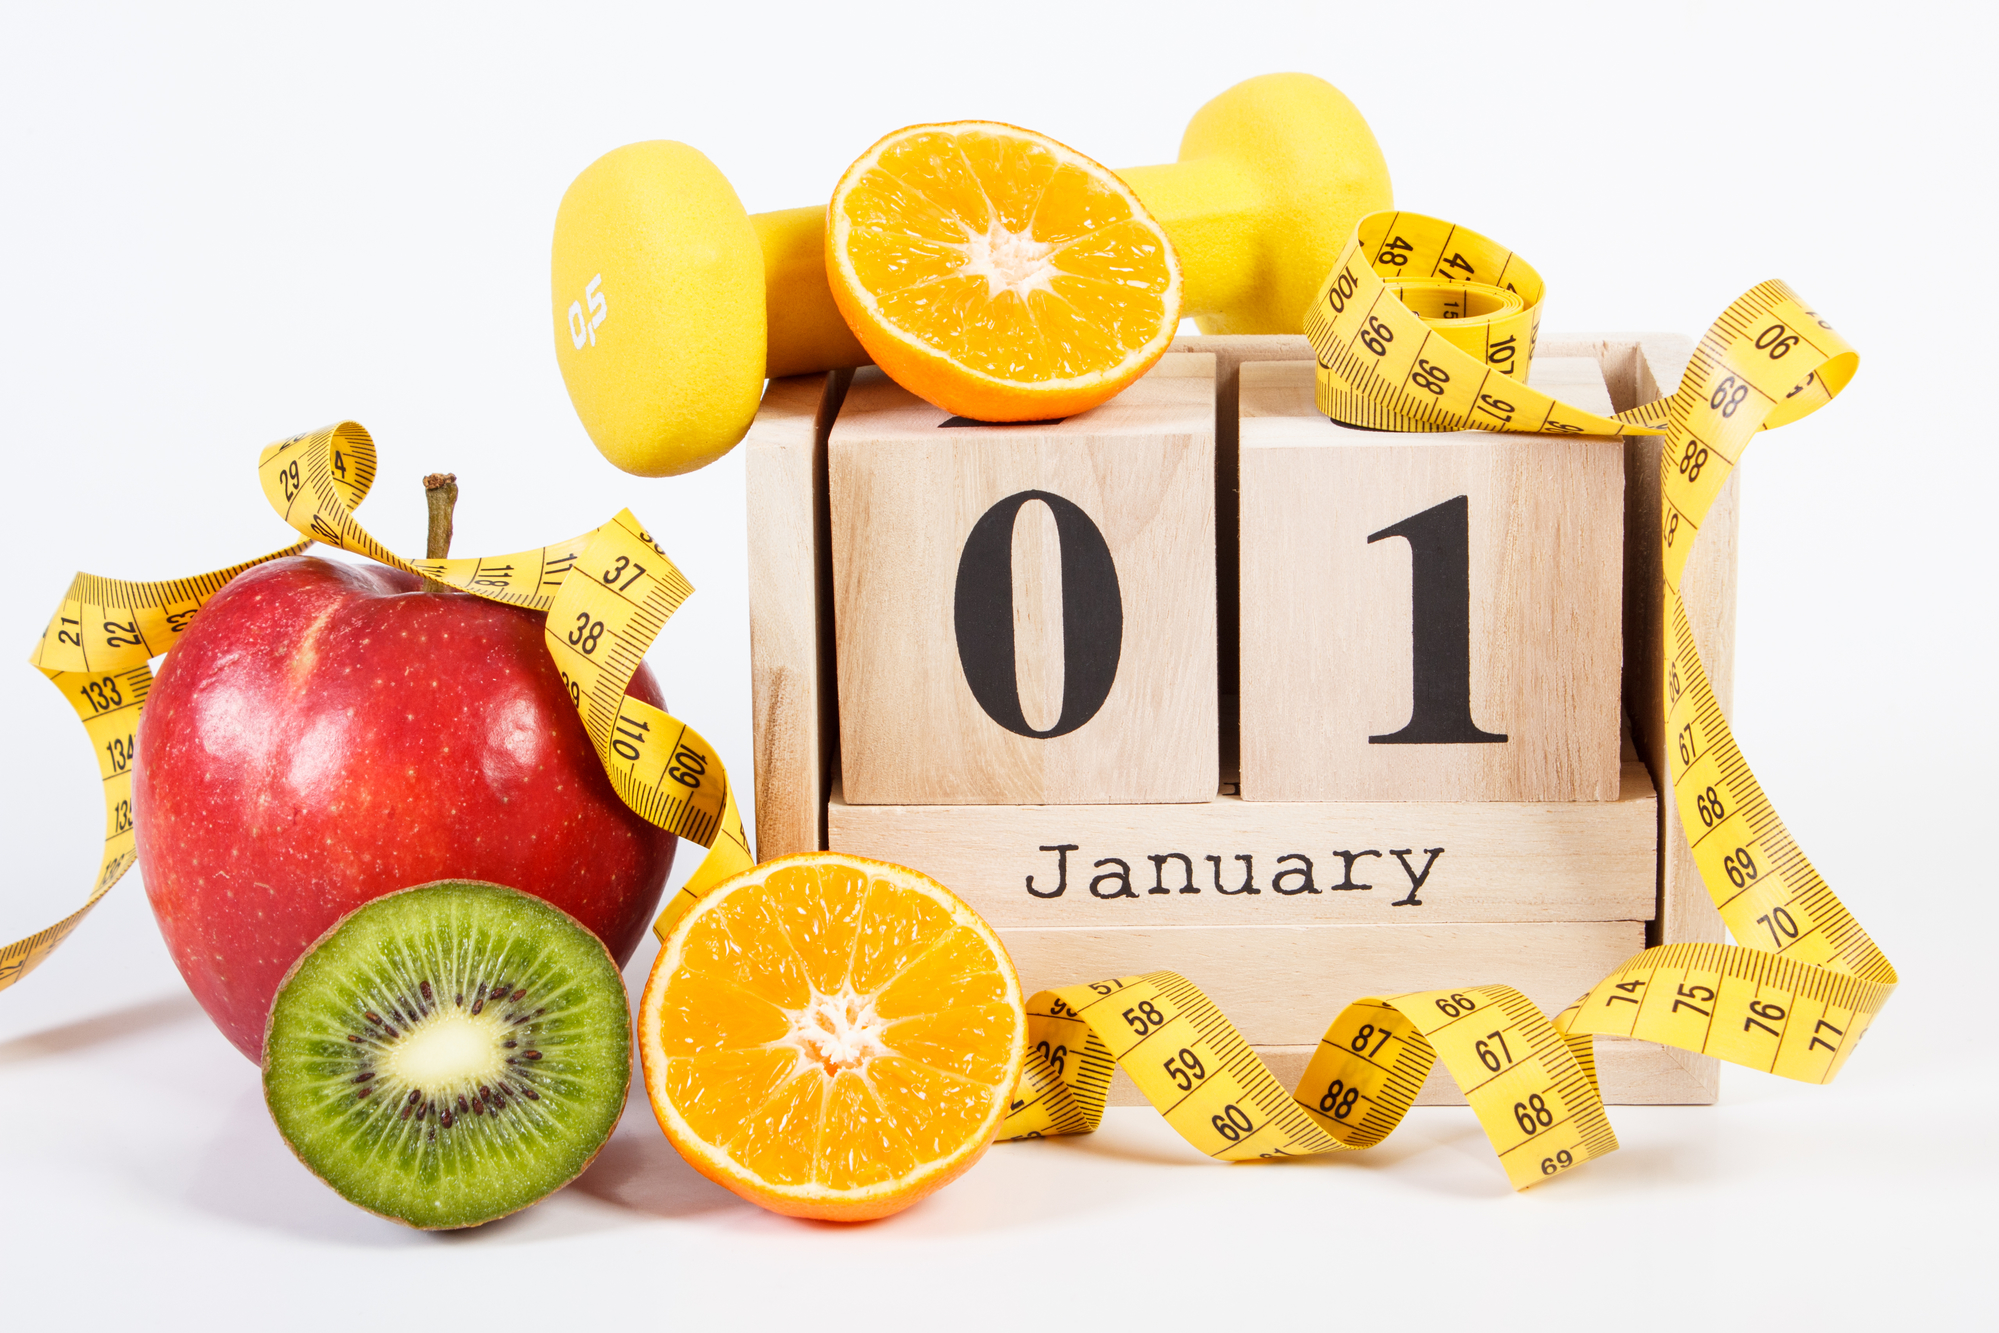 January 1 on cube calendar, fresh fruits, dumbbells and tape measure, new years resolutions of healthy lifestyle.